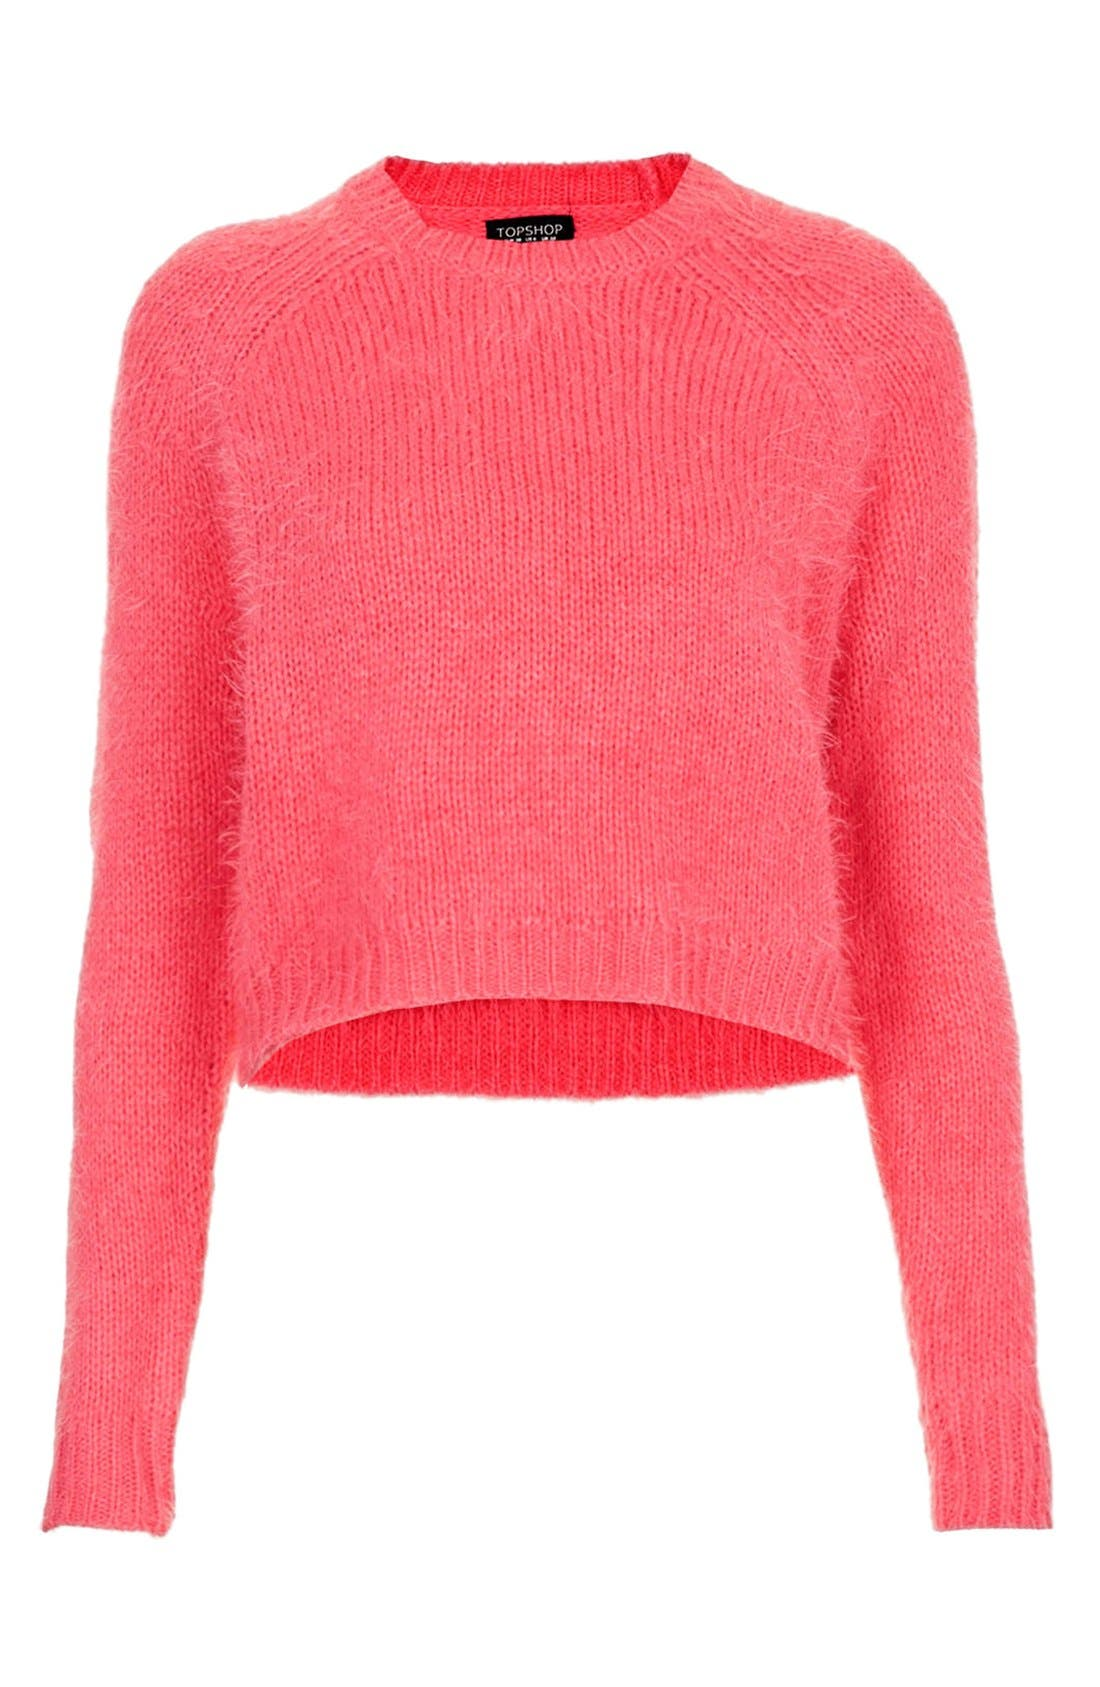 Alternate Image 3  - Topshop Textured Crop Sweater